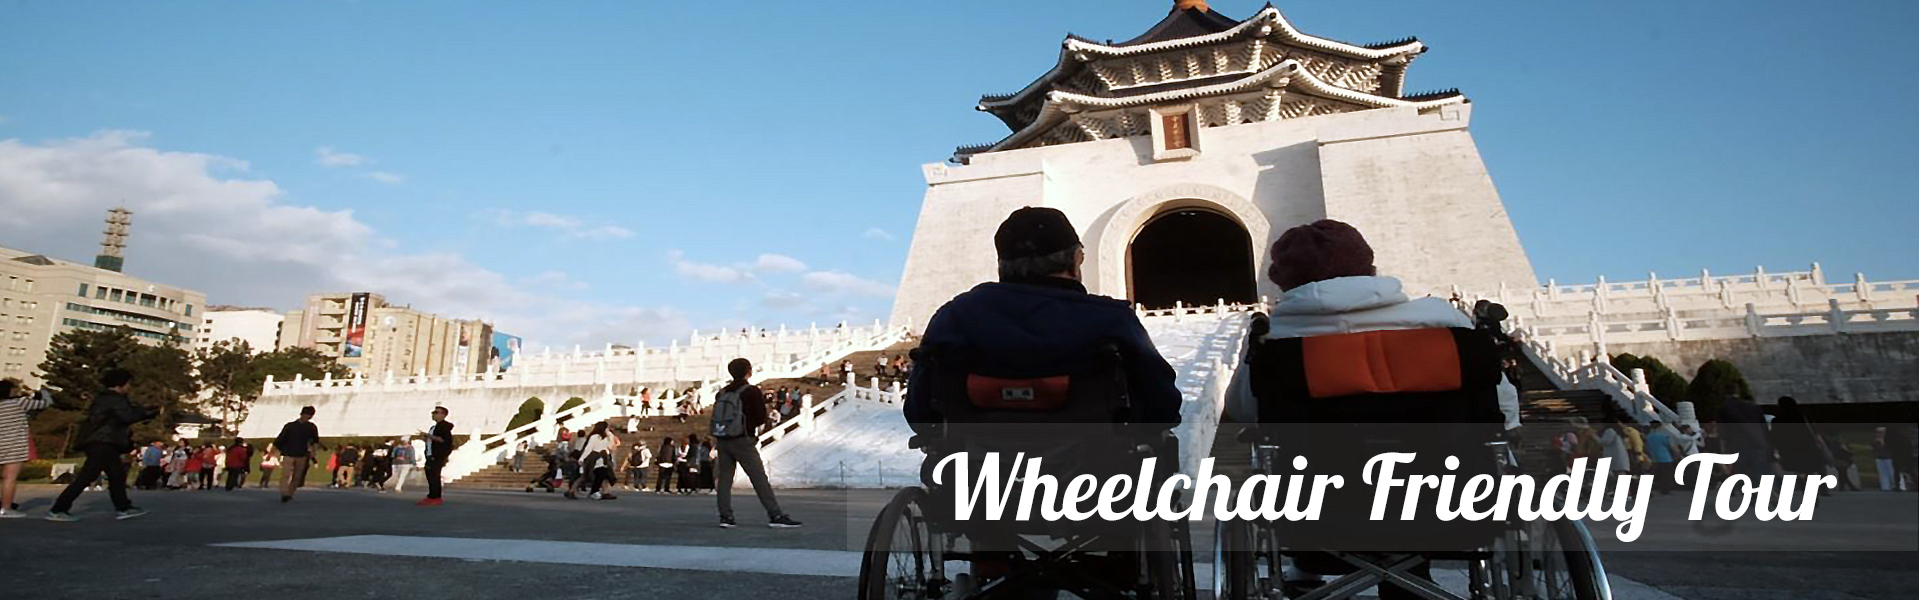 Taiwan private Wheelchair-Friendly tour